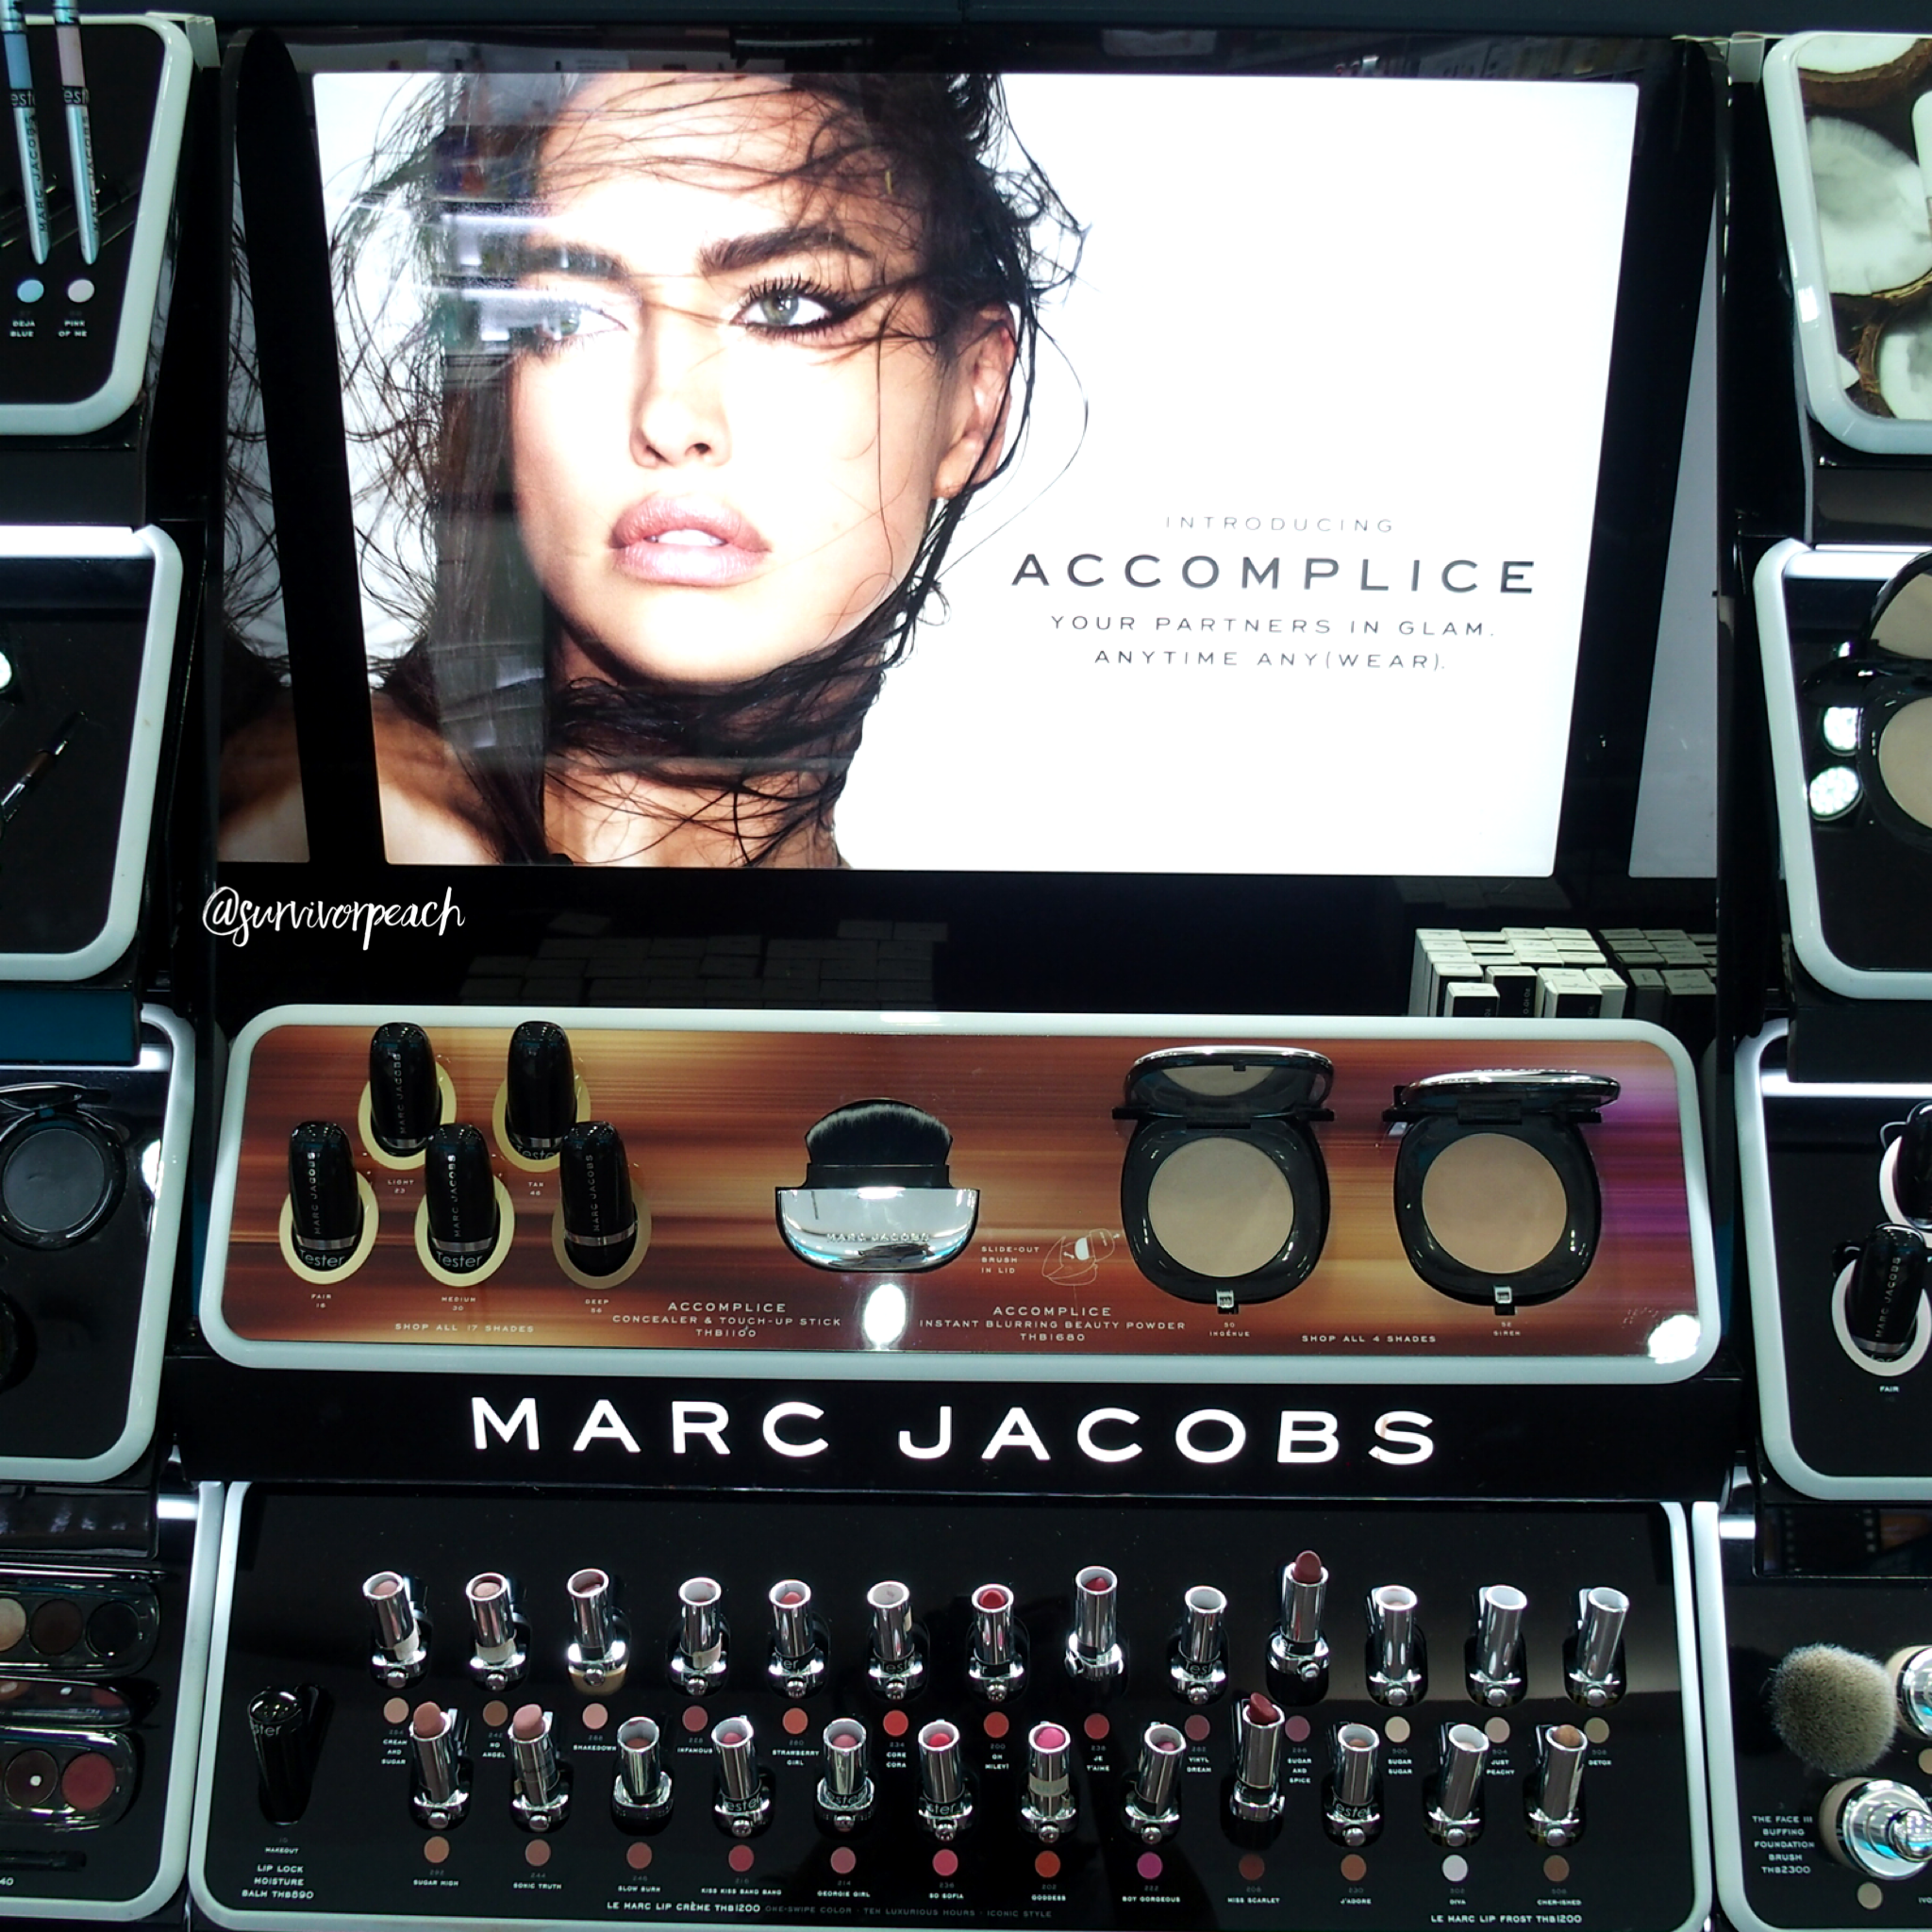 Marc Jacobs Accomplice Concealer & Touch Up Stick